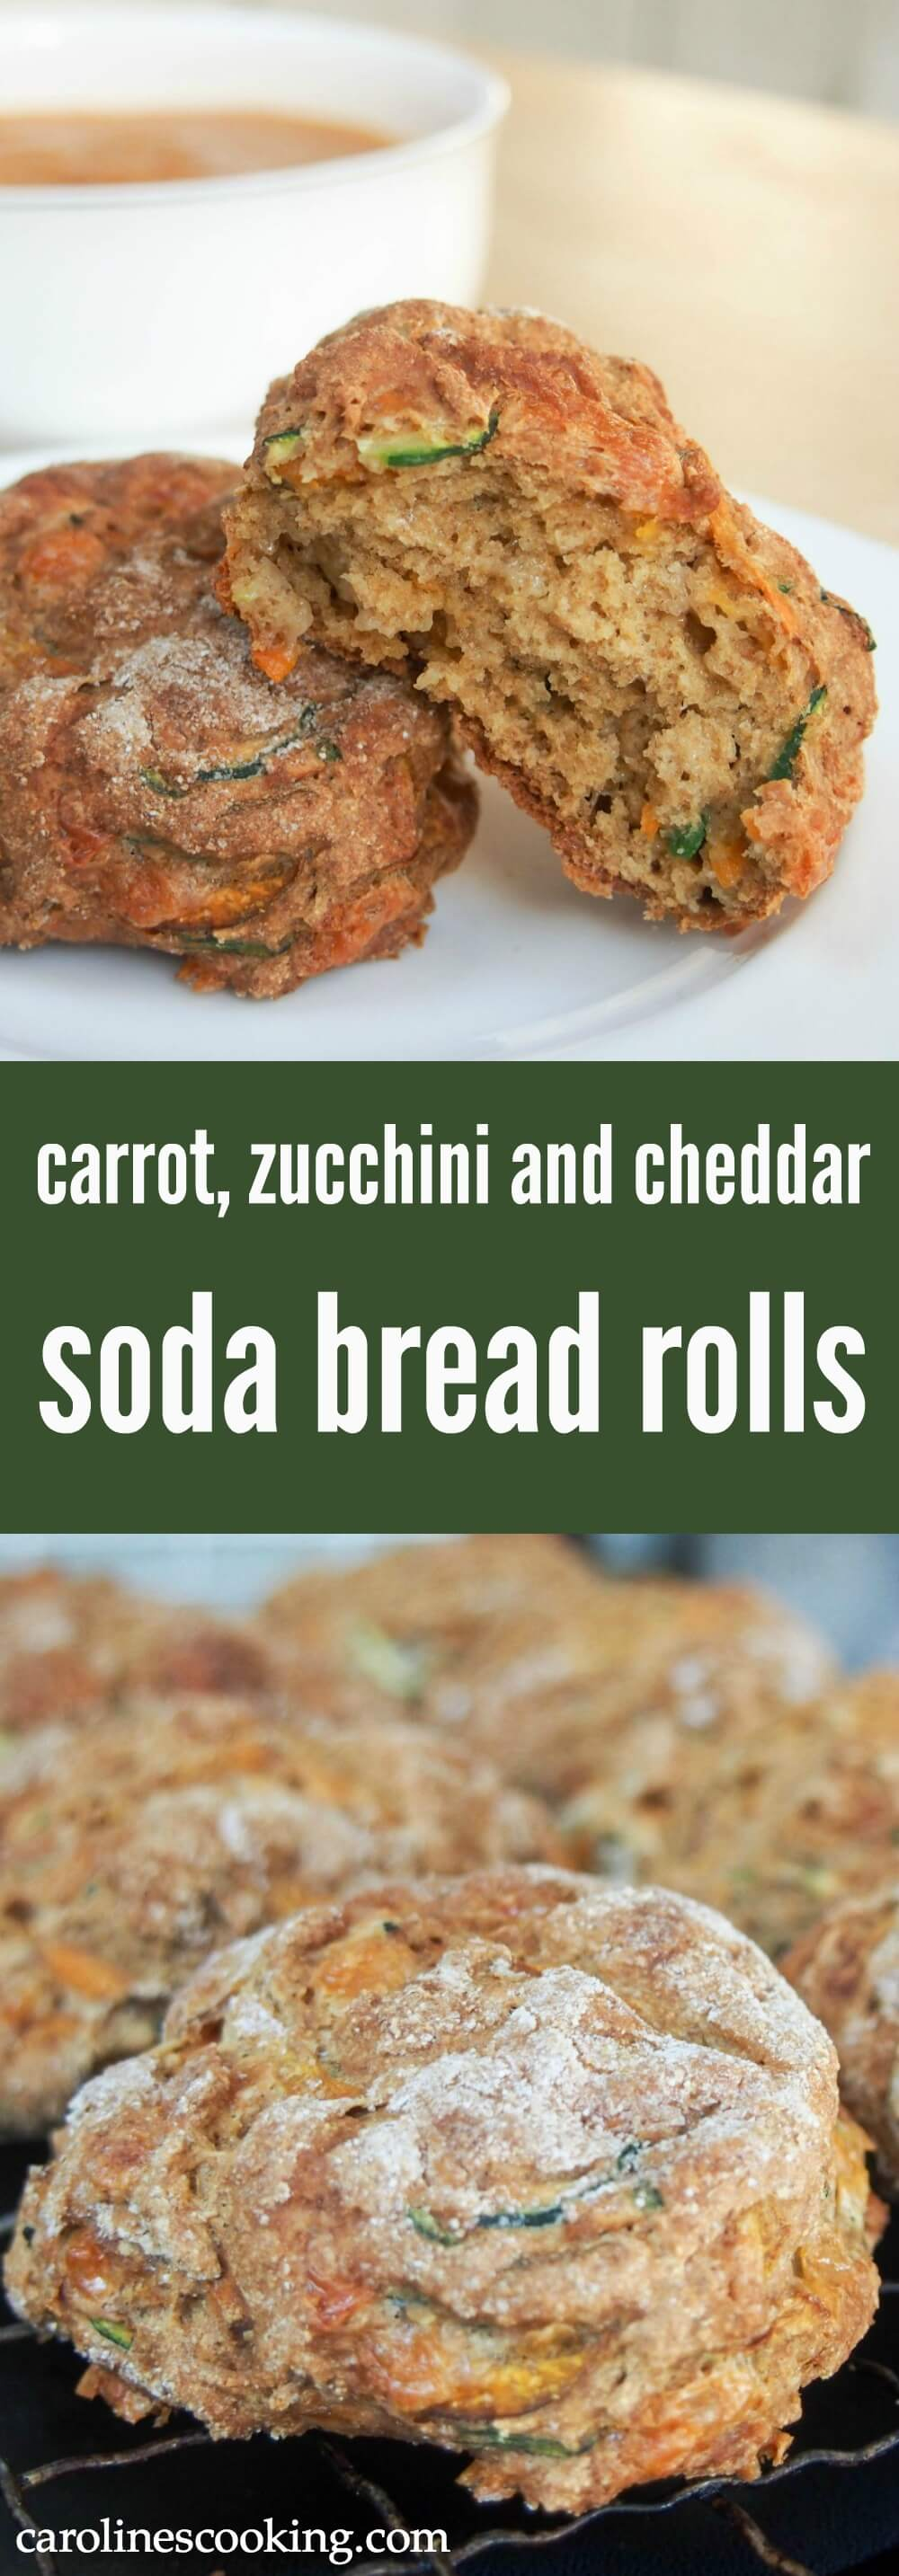 These tasty soda bread rolls are quick to make and made with carrot, zucchini and cheddar to add texture, flavor and generally be a bit better for you.